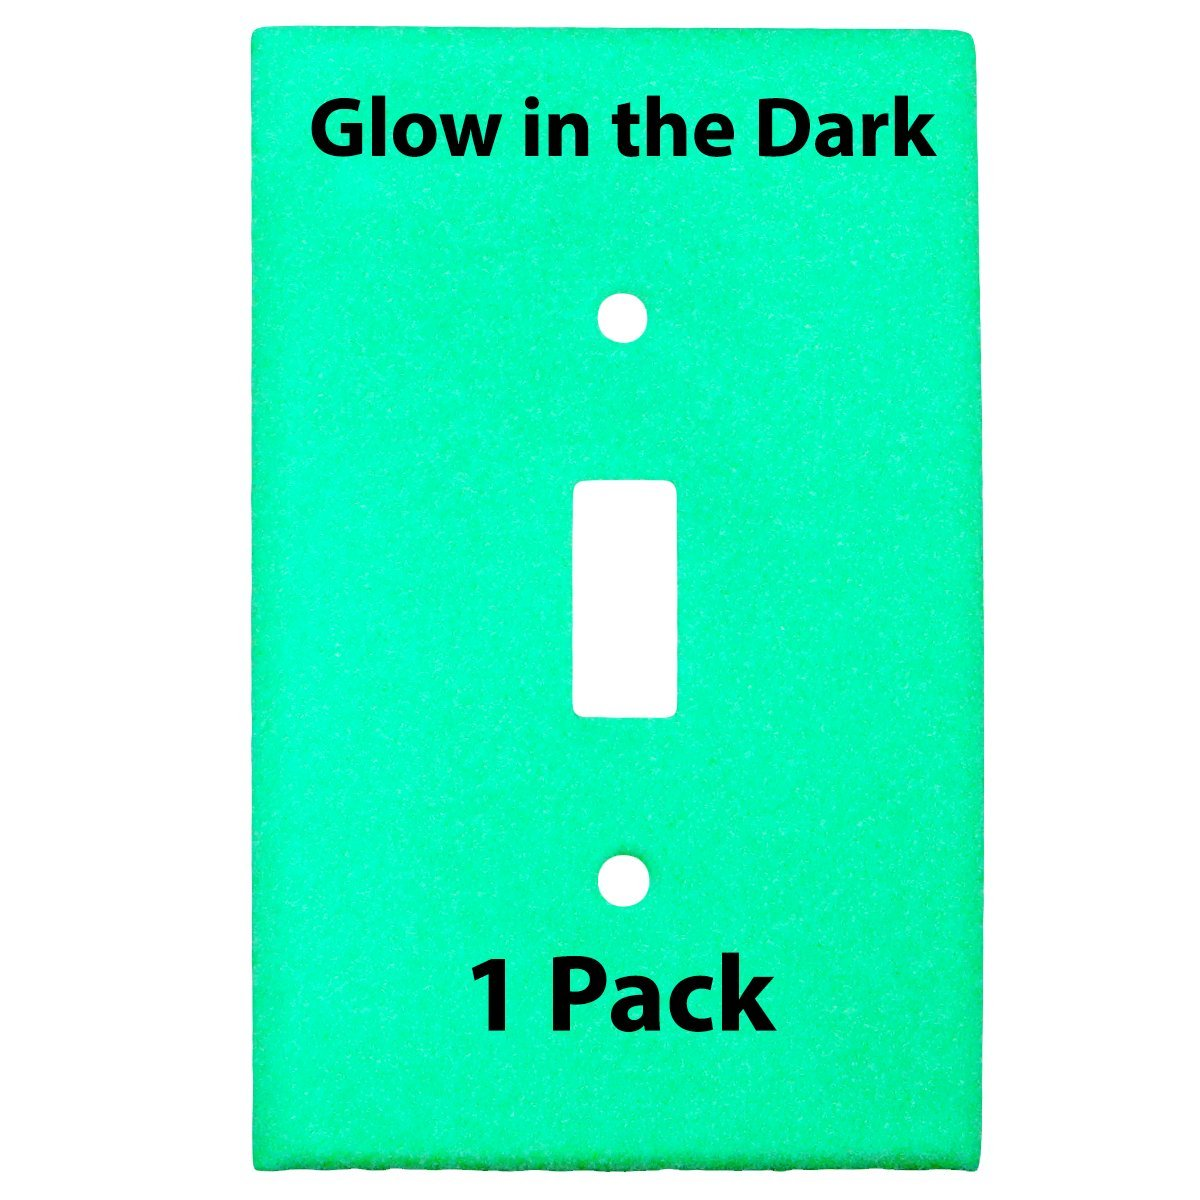 Glow in the Dark Safety 1-Gang Wall Cover Plate - White Plastic - Standard Size for Single Toggle Light Switch (Single Pack)